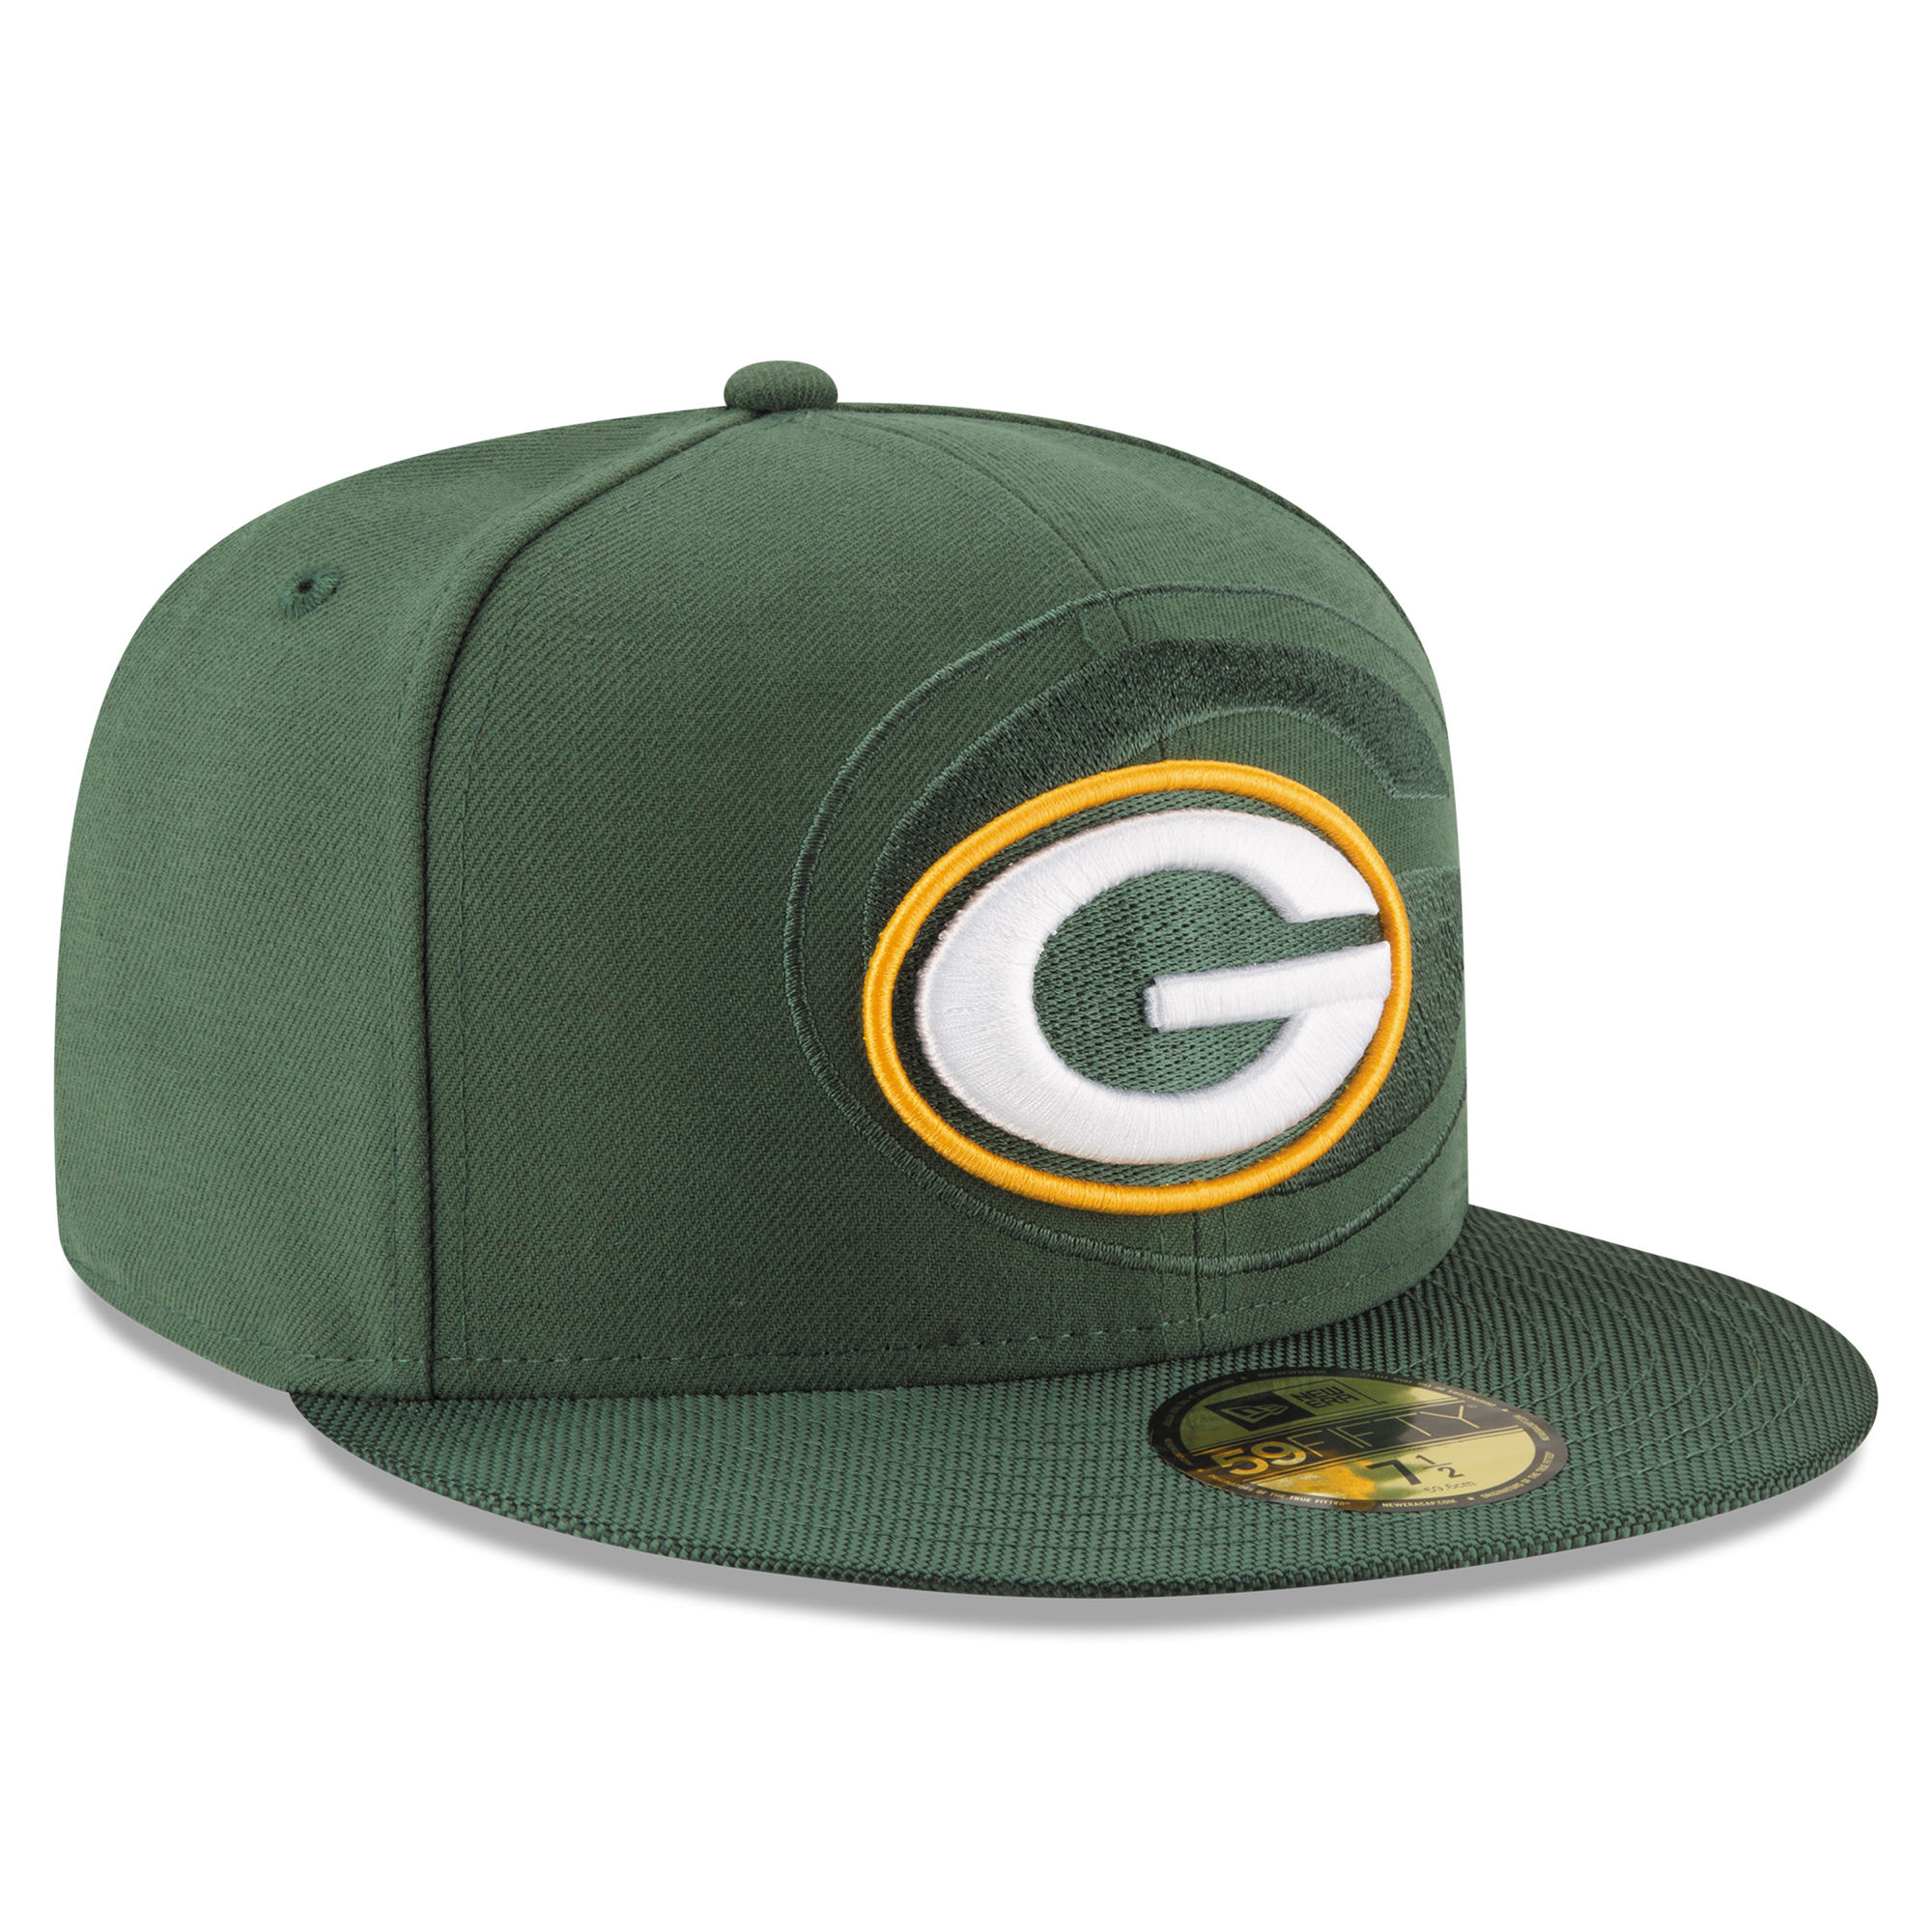 New Era Green Bay Packers Green 2016 Sideline Official 59FIFTY Fitted Hat 4a041921a